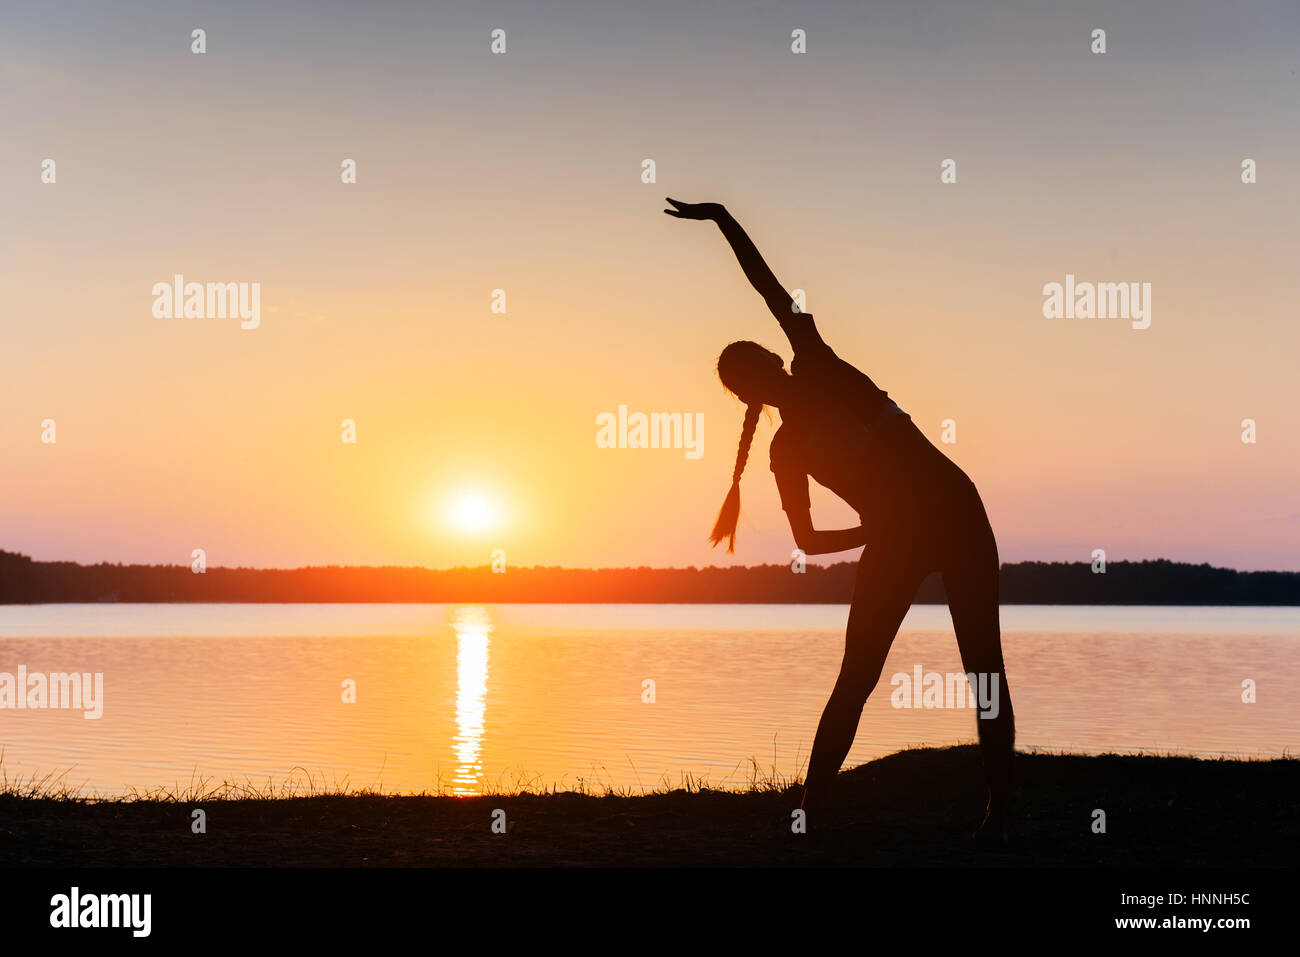 girl at sunset by the lake - Stock Image